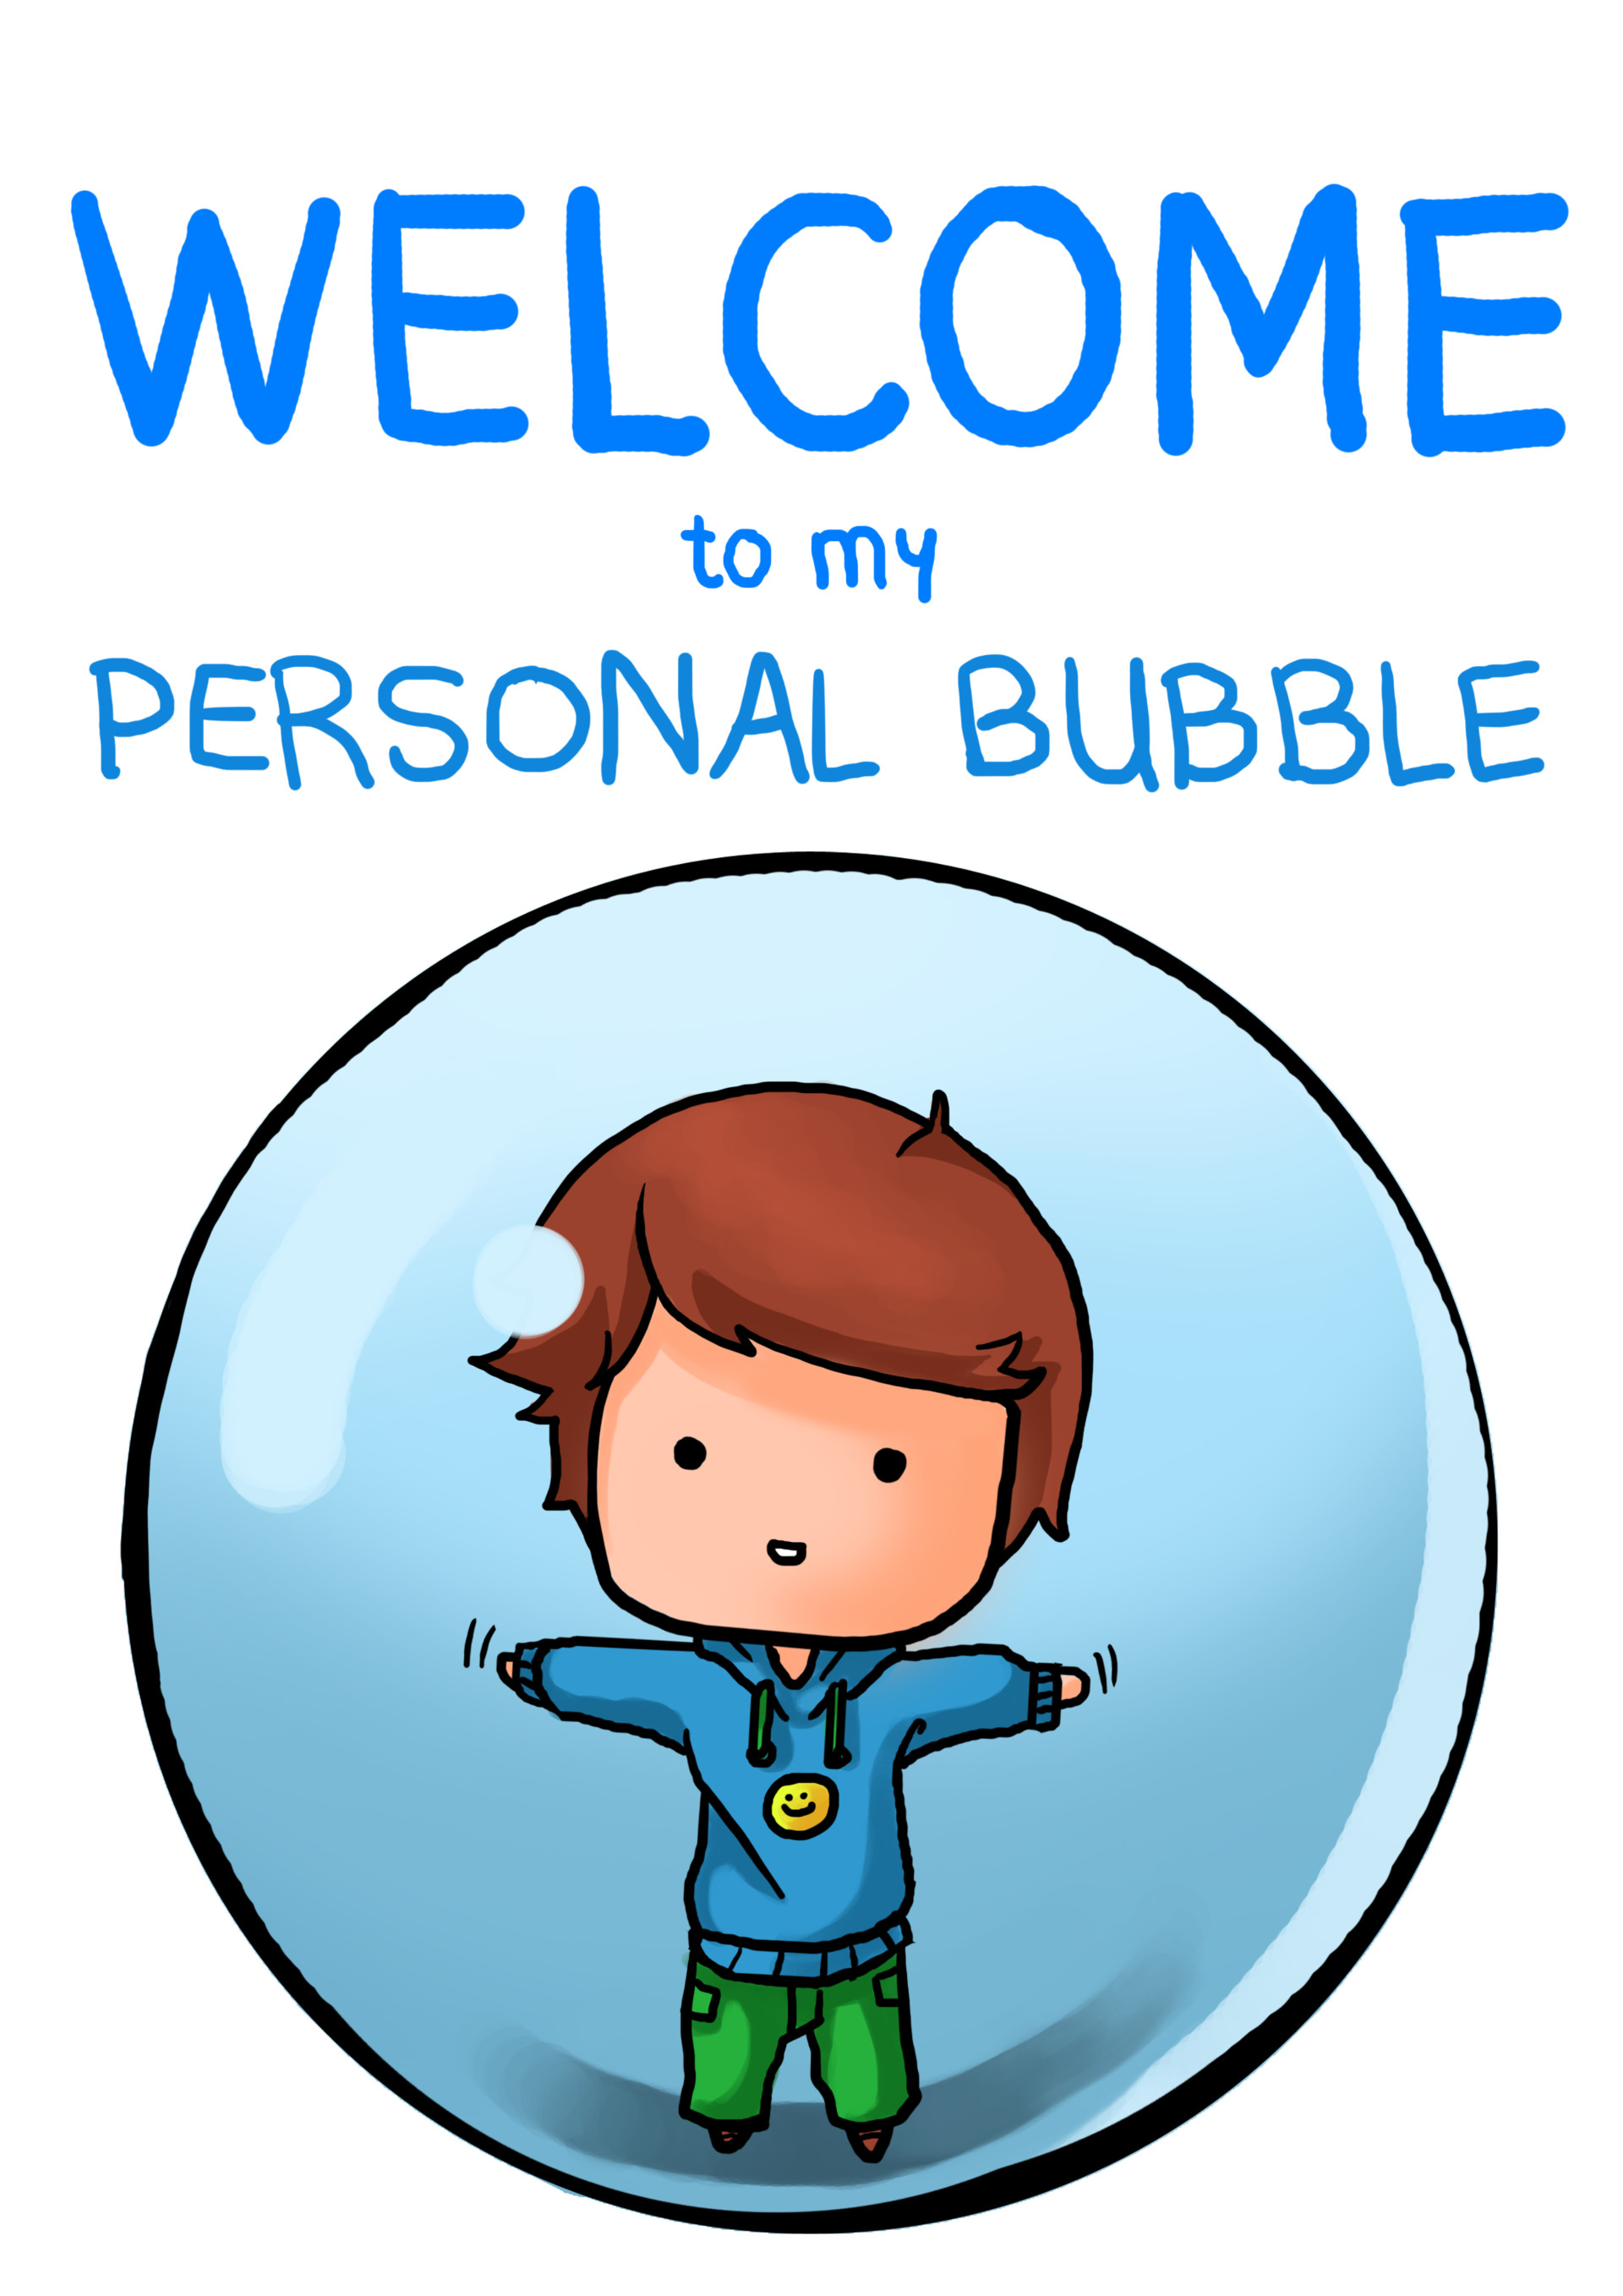 Shellz art personal bubble boy